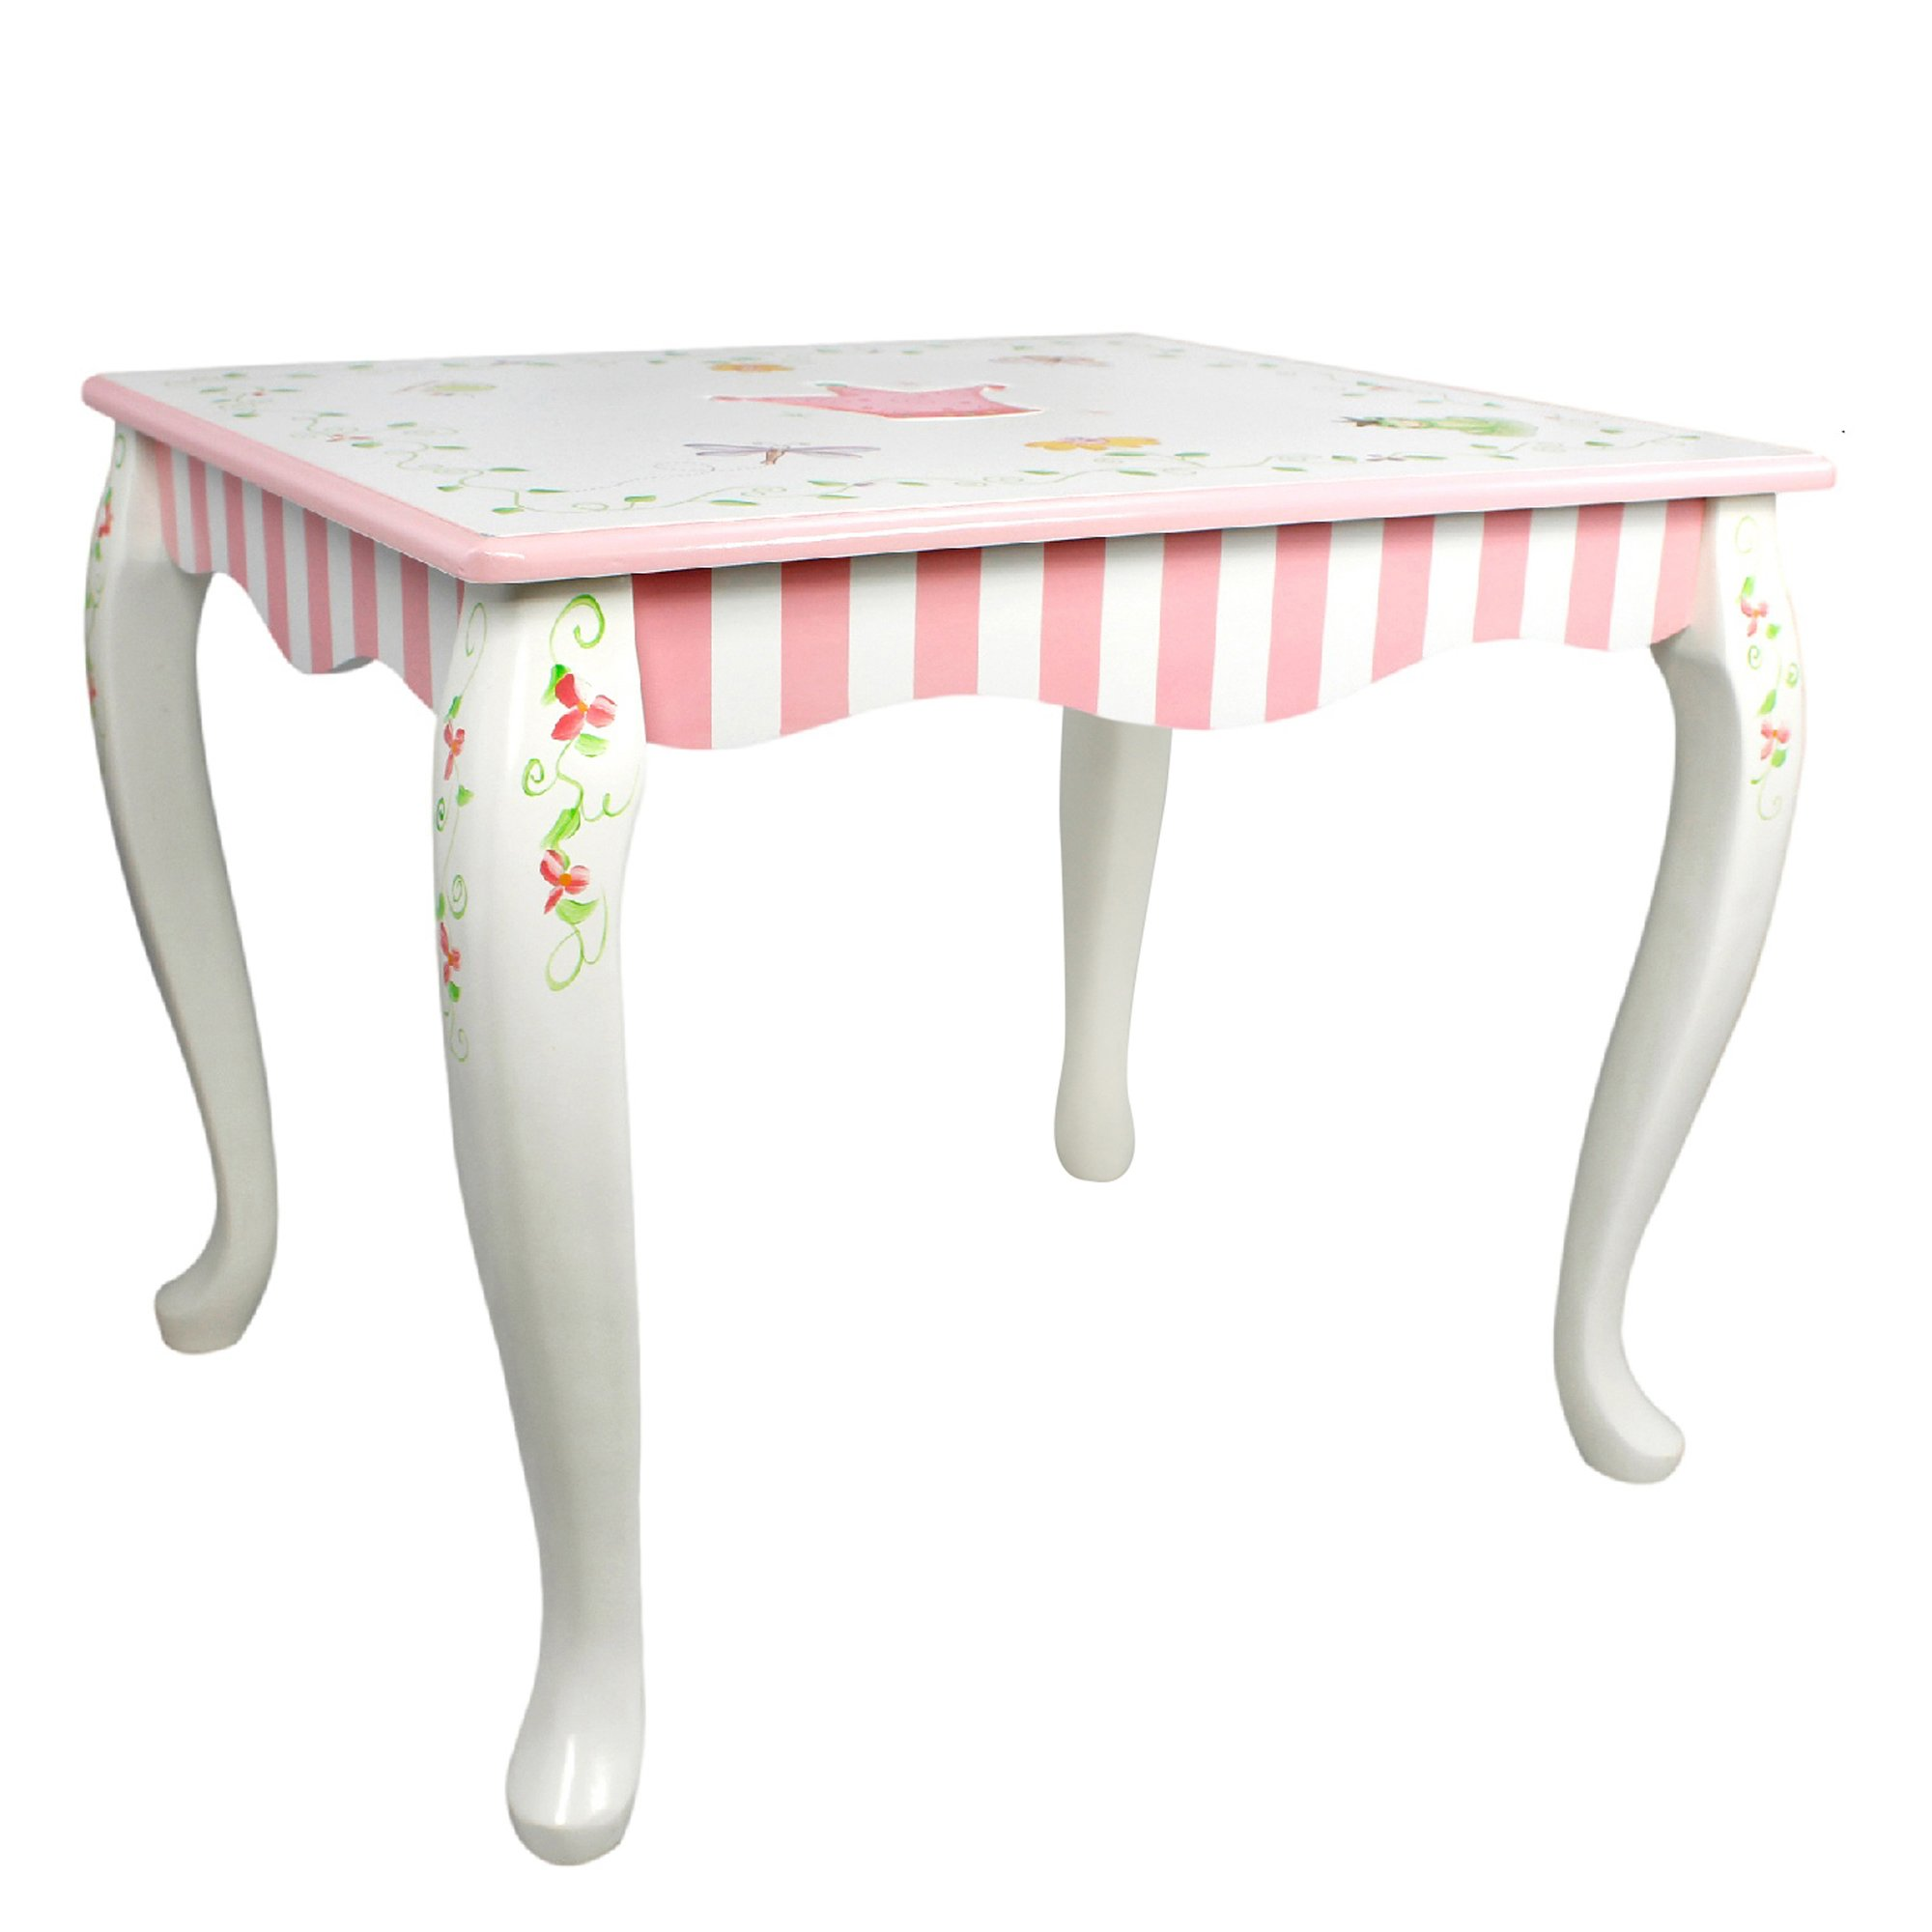 Fantasy Fields - Princess & Frog Thematic Hand Crafted Kids Wooden Table and 2 Chairs Set  Imagination Inspiring Hand Crafted & Hand Painted Details   Non-Toxic, Lead Free Water-based Paint by Fantasy Fields (Image #6)